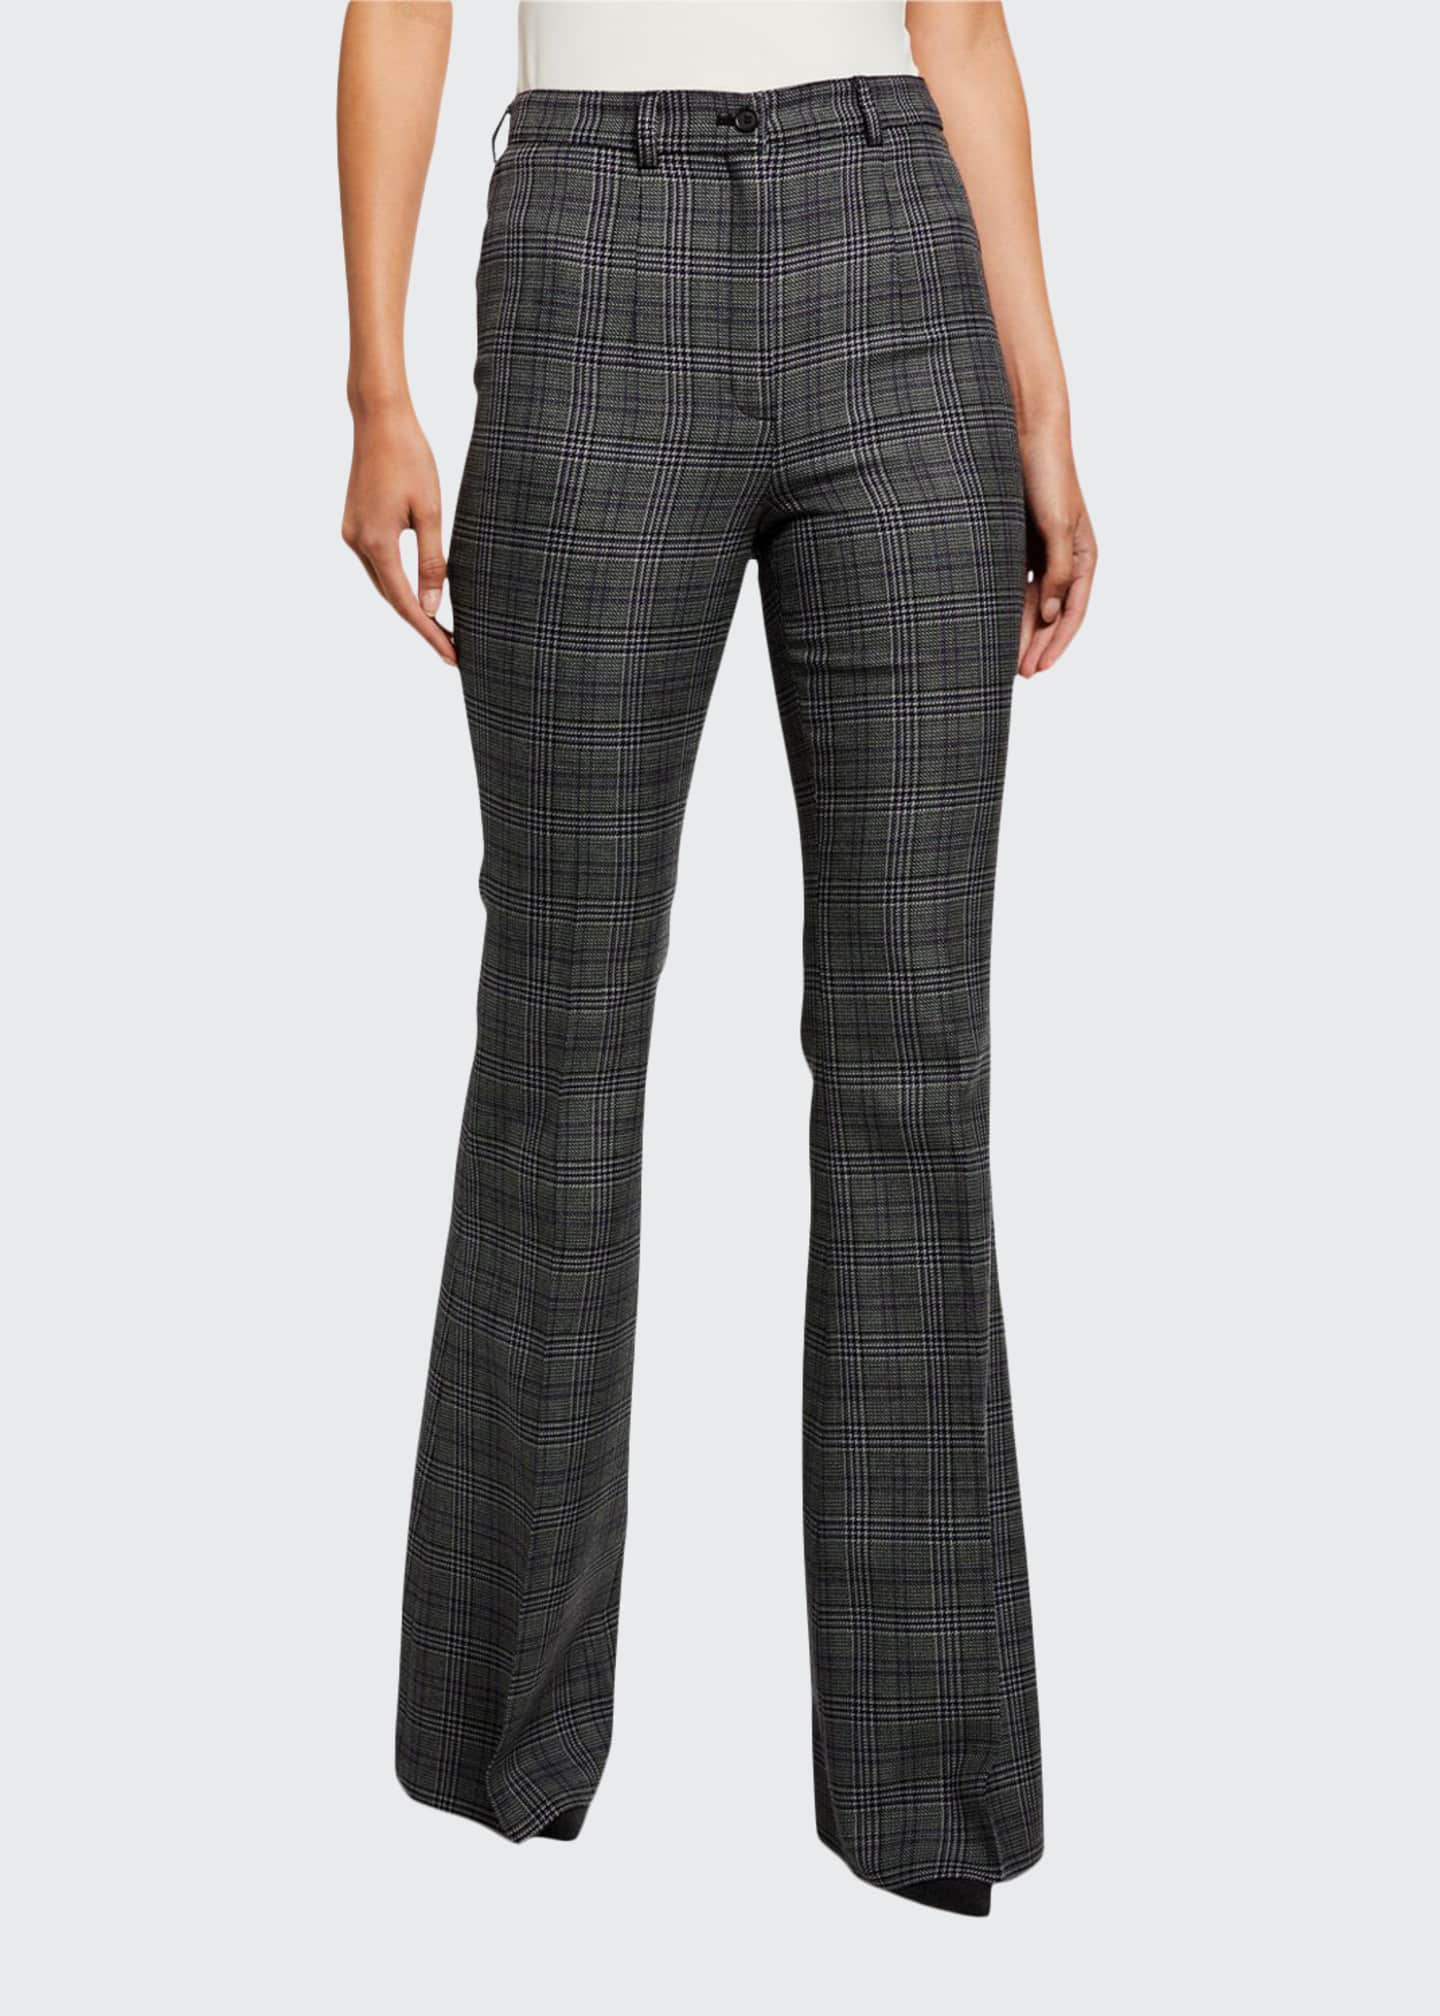 Michael Kors Collection Glen-Plaid High-Rise Wool Flare Pants